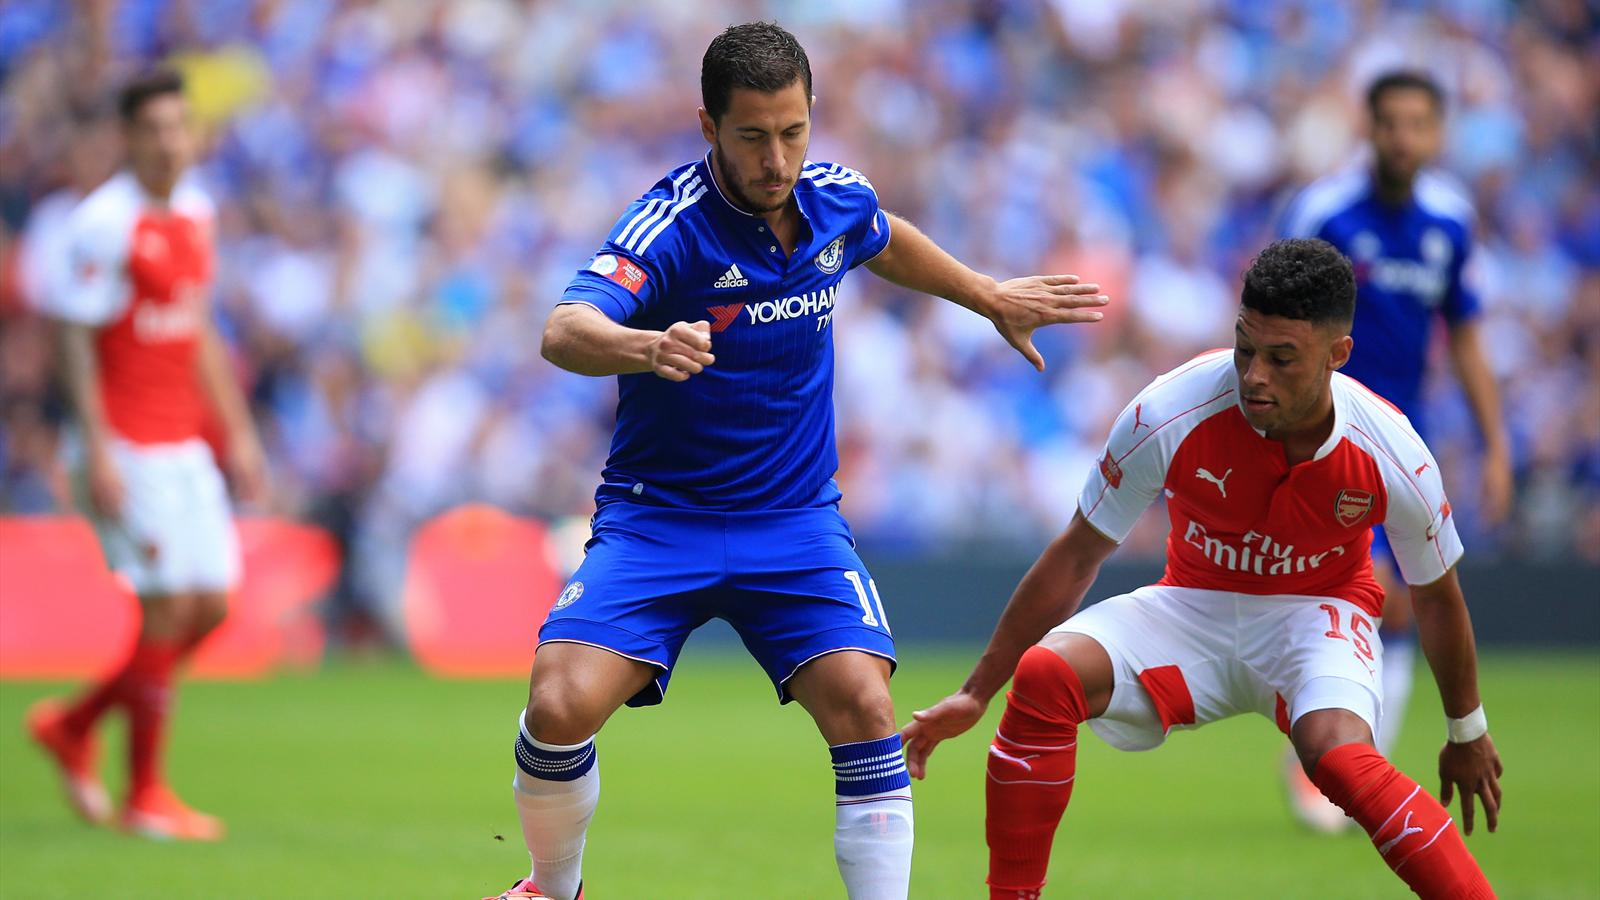 Chelsea's Eden Hazard (left) and Arsenal's Alex Oxlade-Chamberlain battle for the ball.